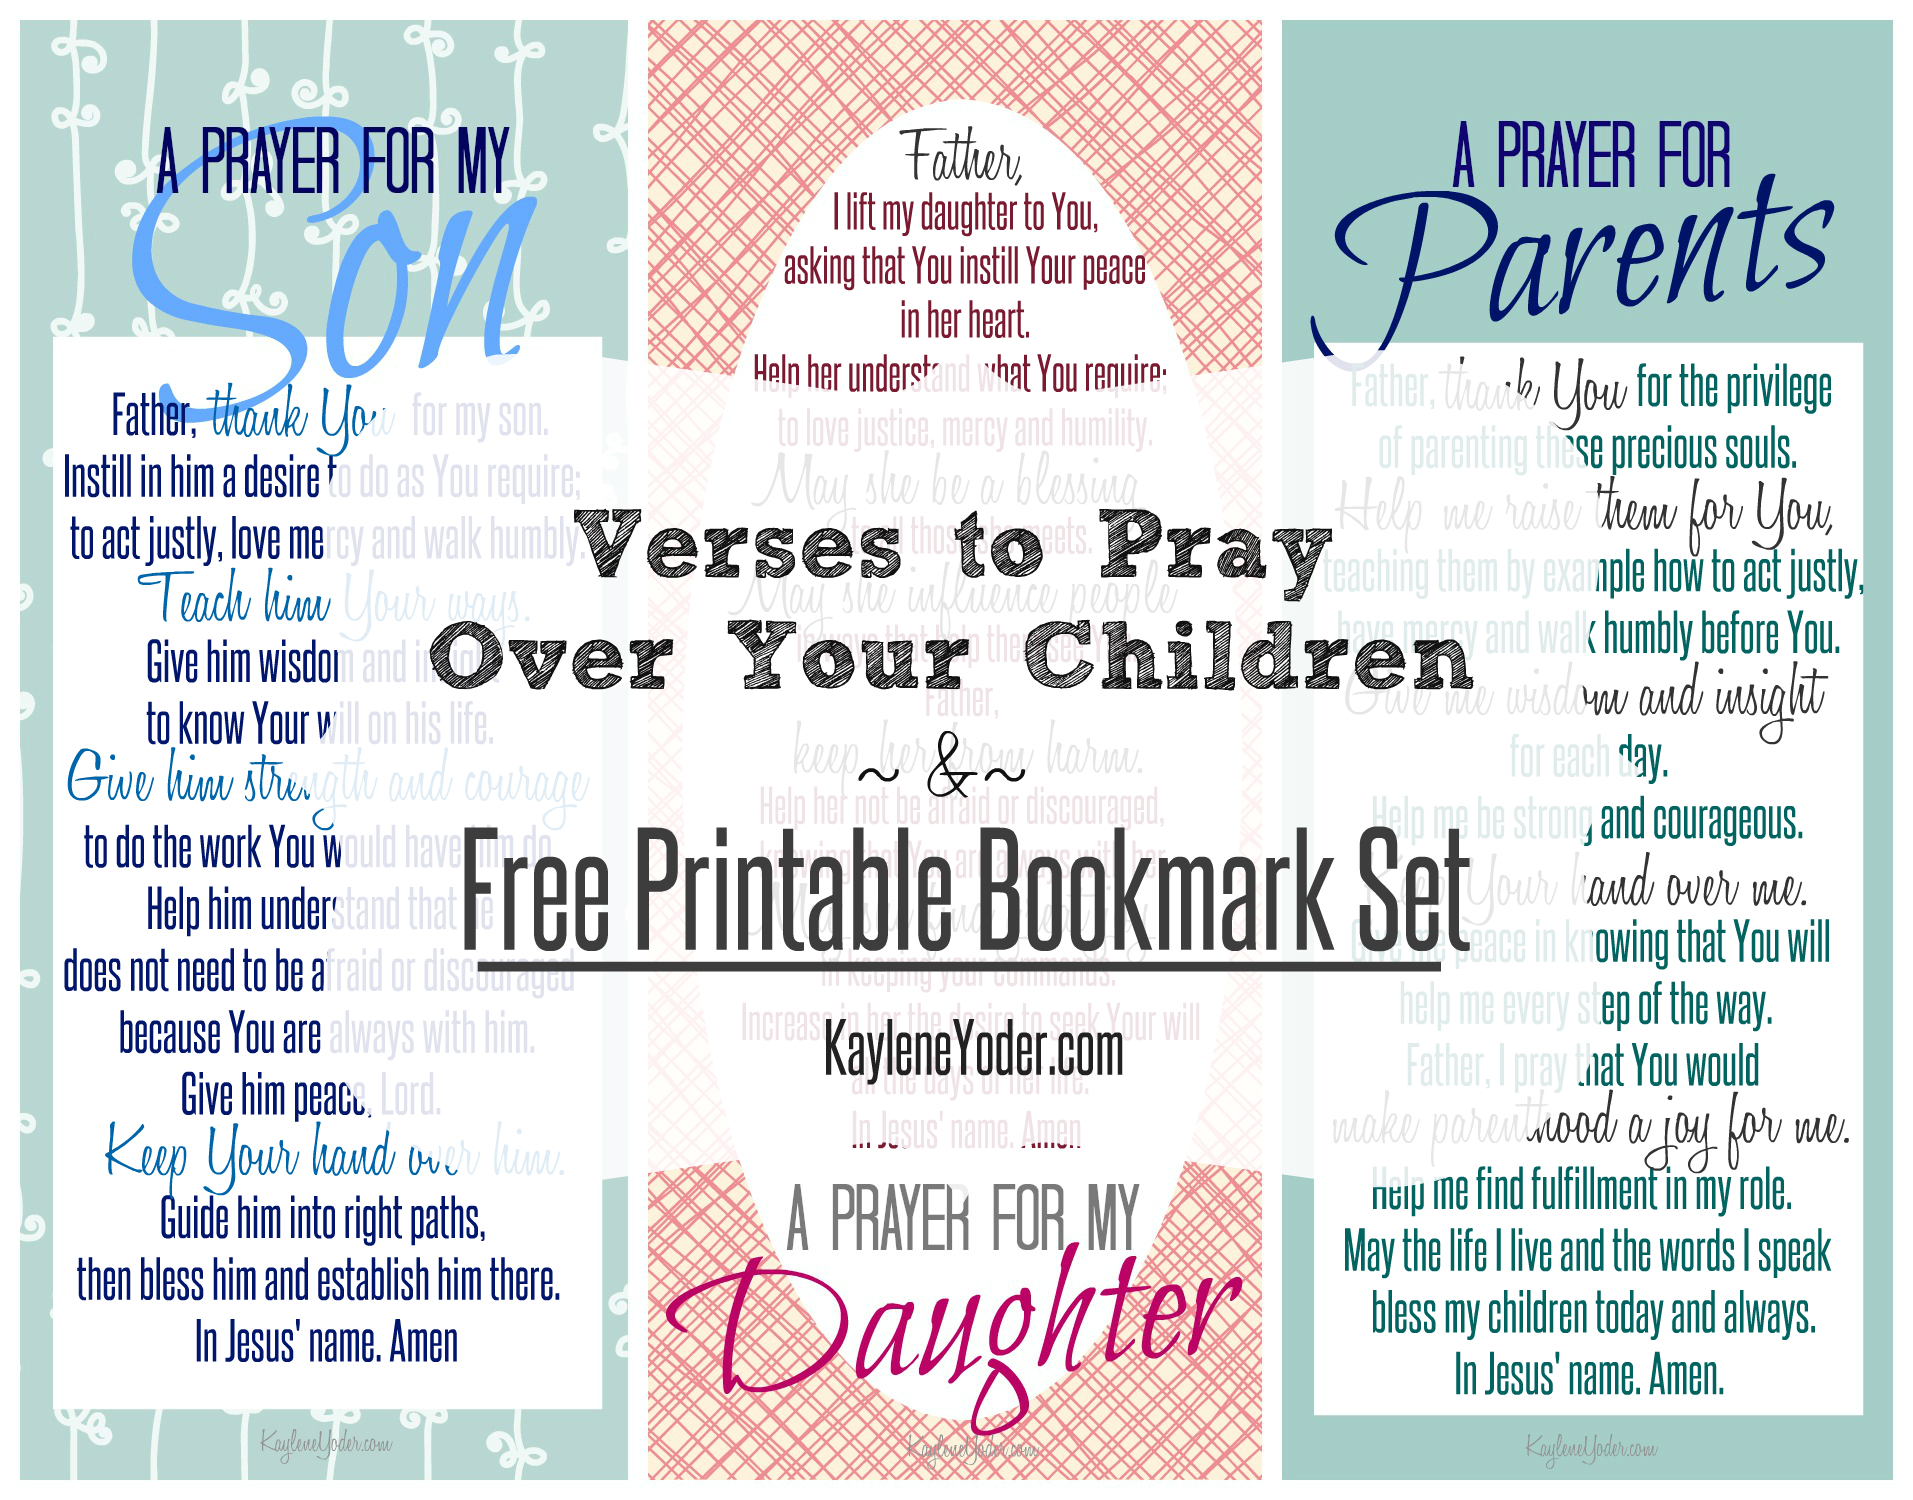 Free printable bookmark set with a prayer for sons, daughters and parents (1)